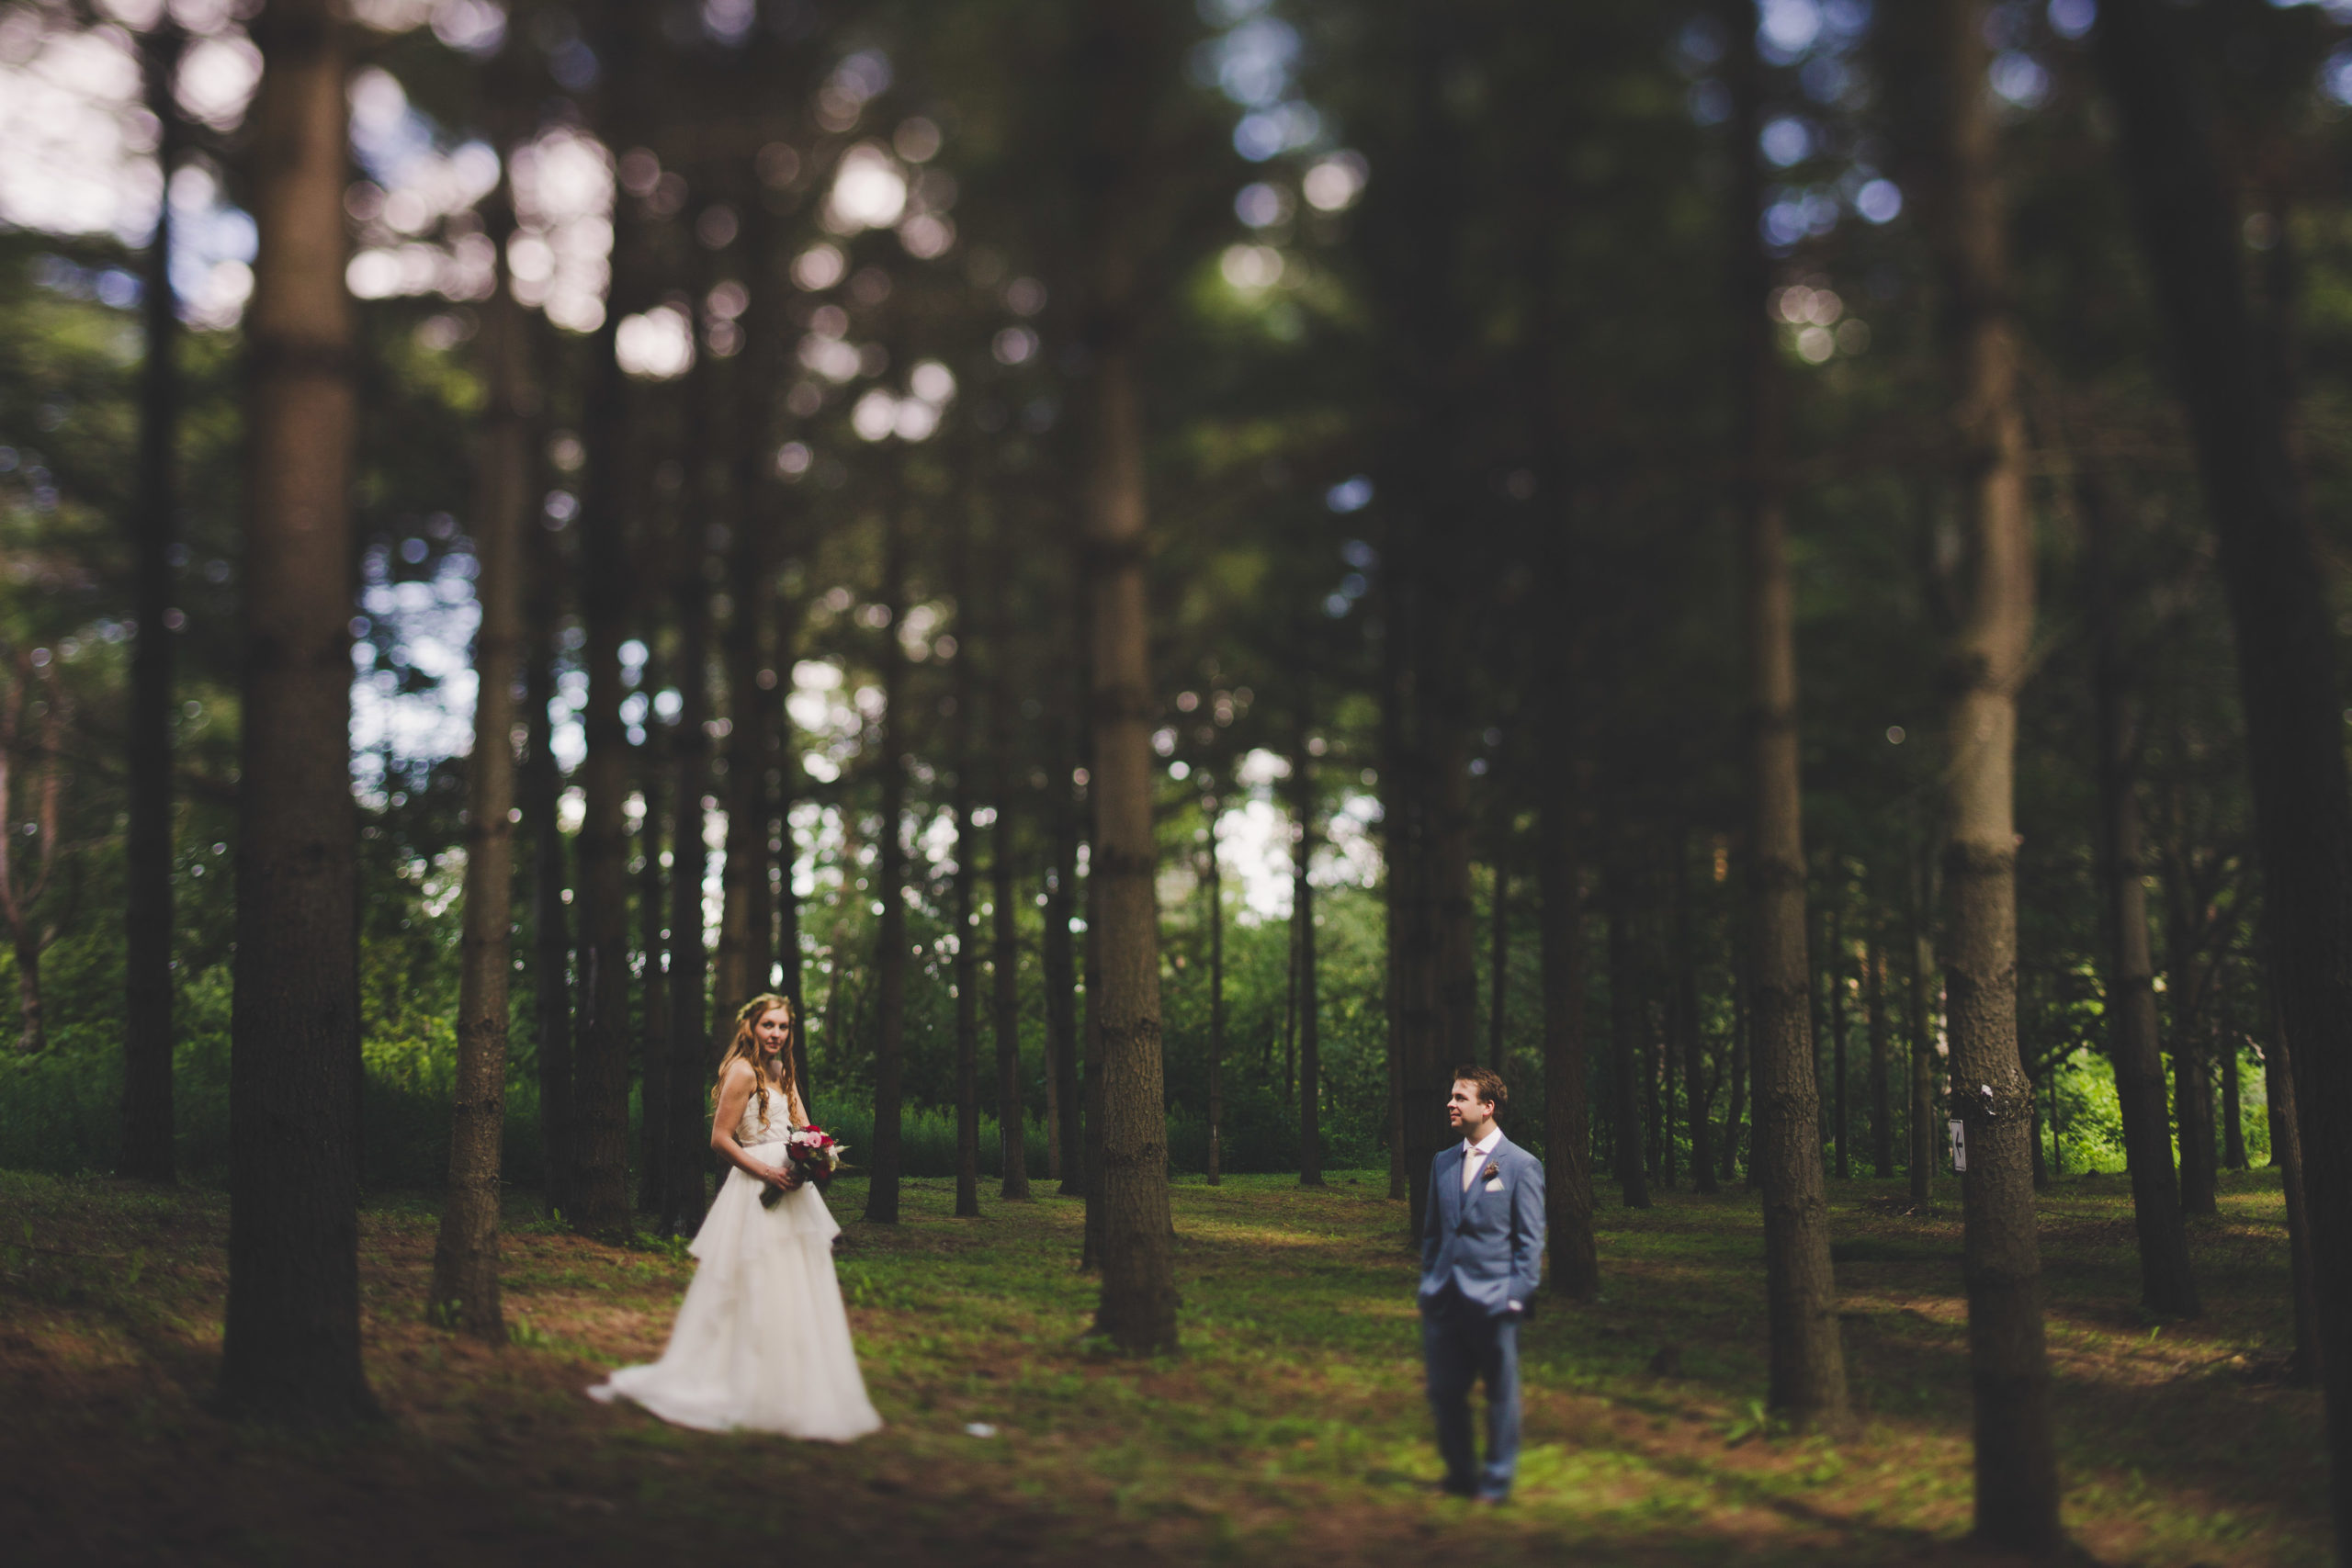 Bride groom wedding forest trees